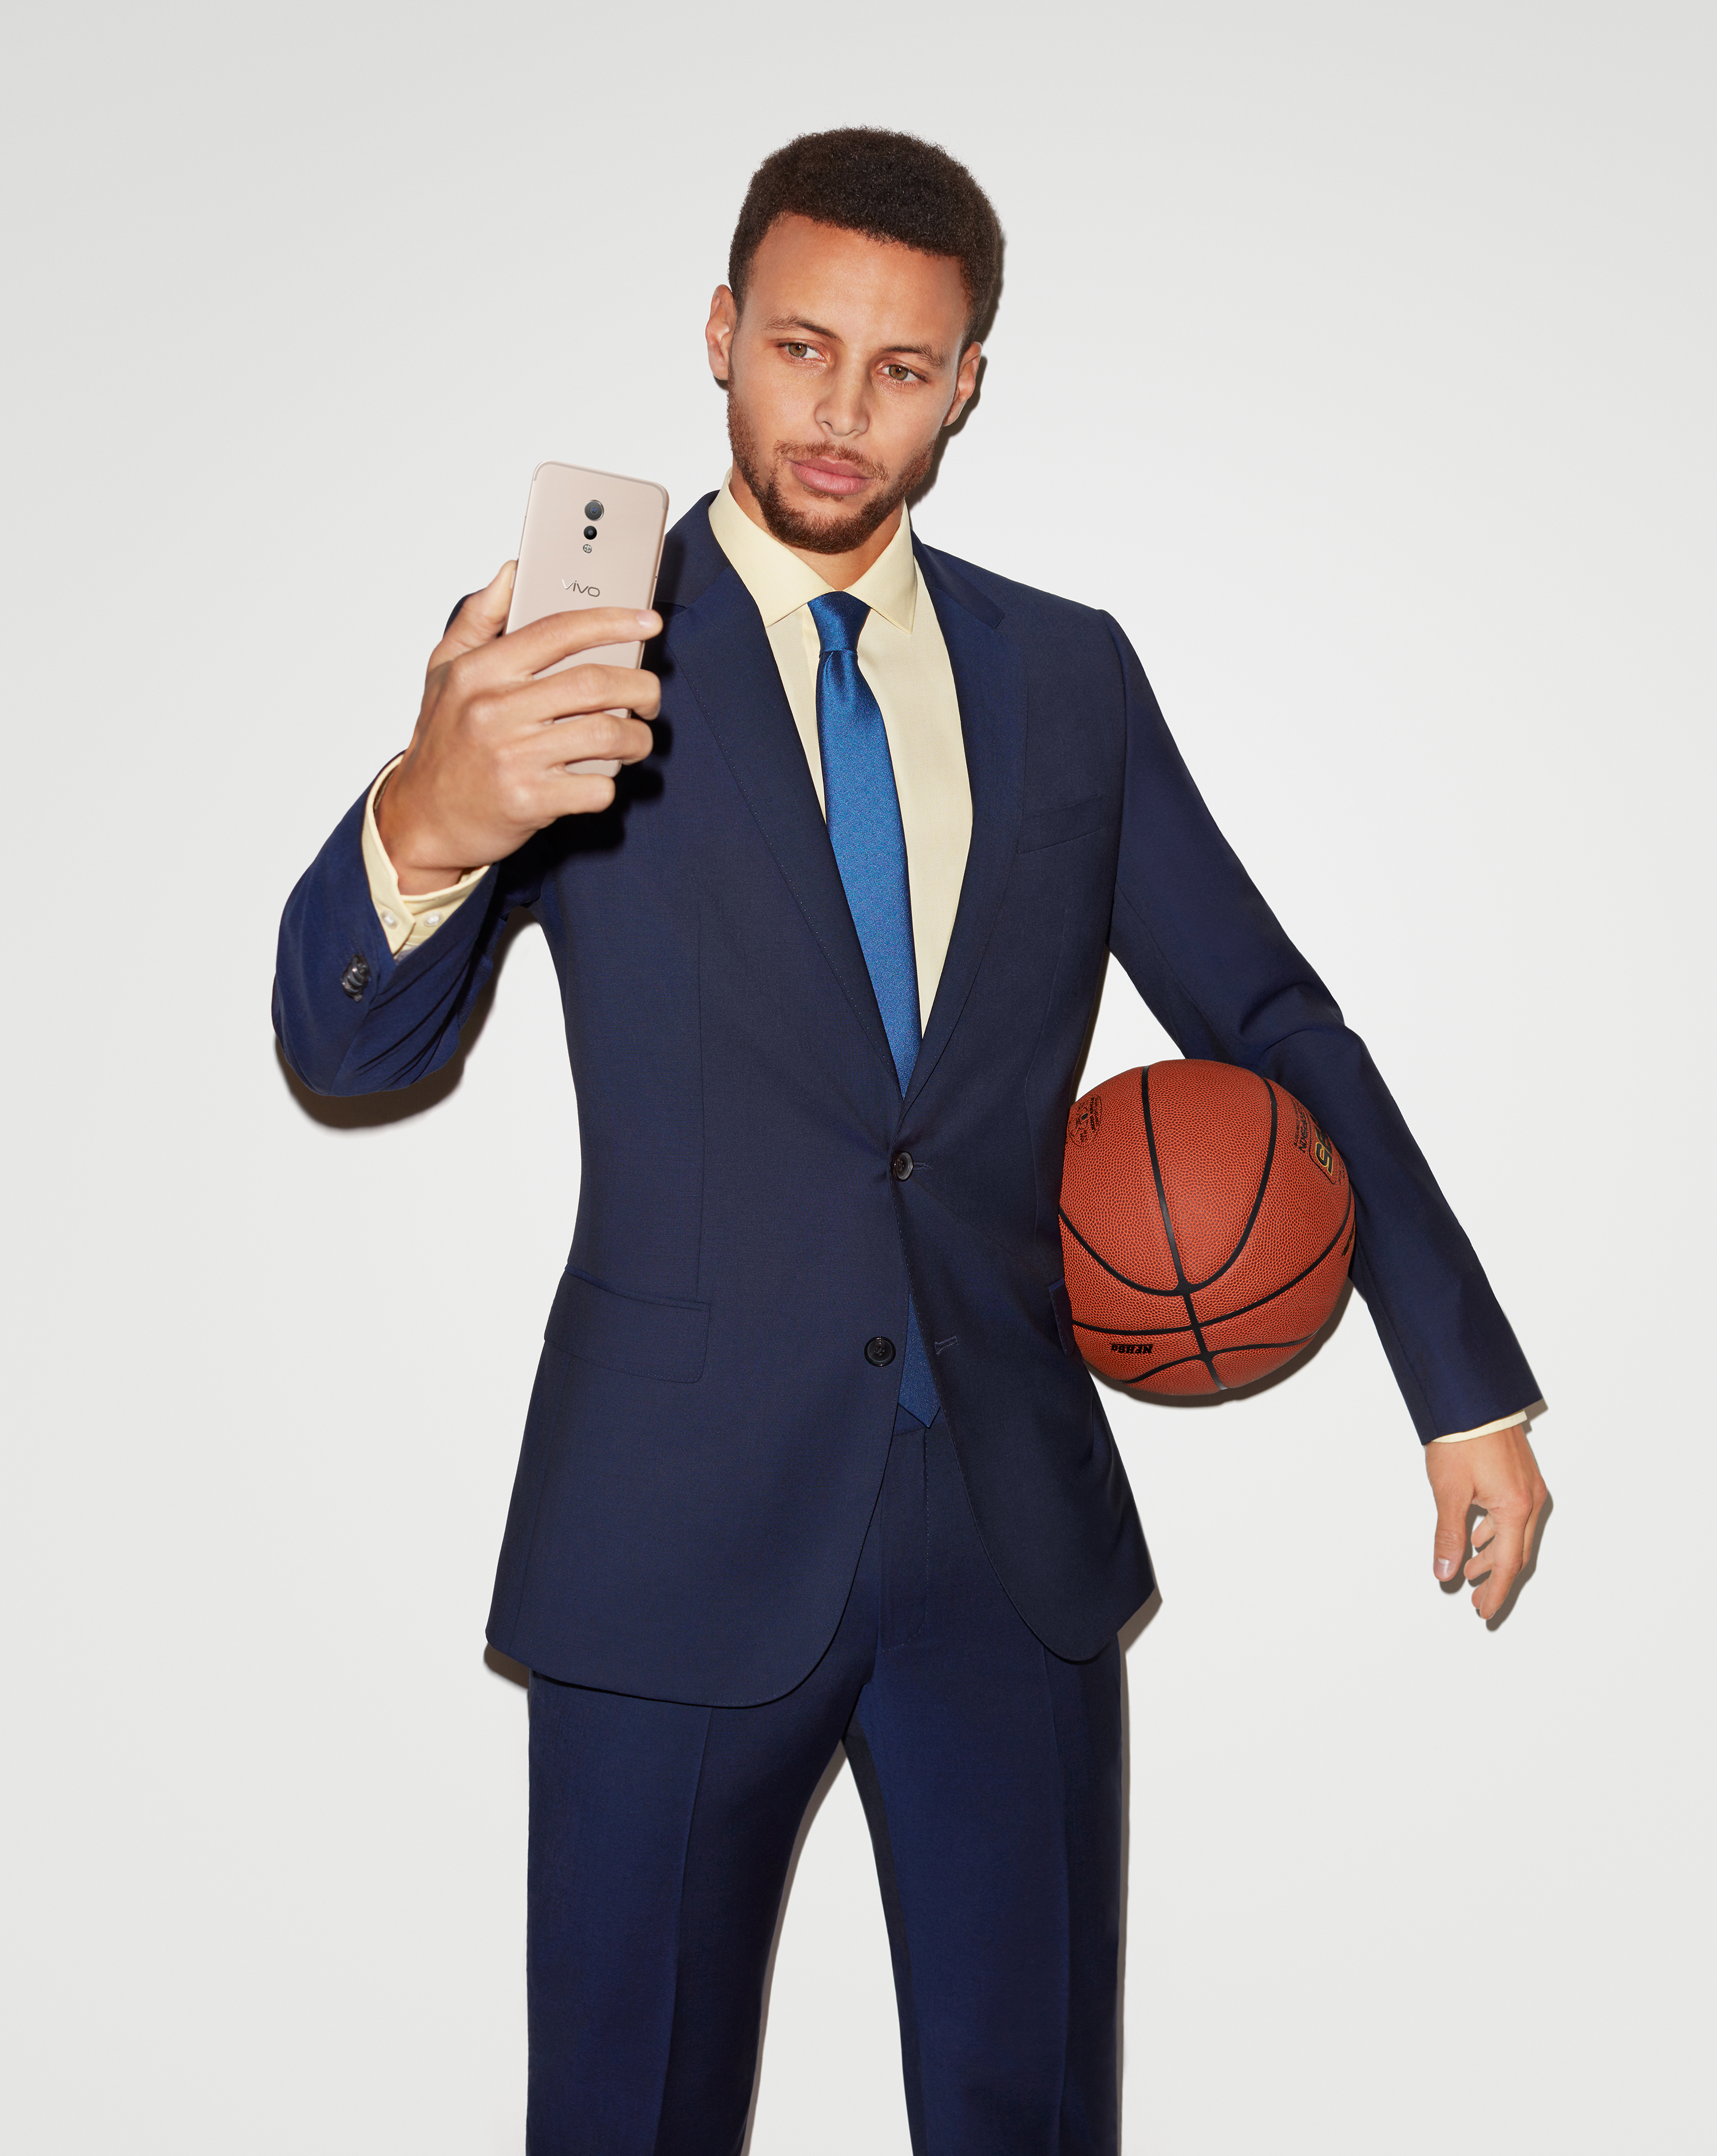 NBA Superstar Stephen Curry is the official endorser of all Vivo phones, including the V5 Lite